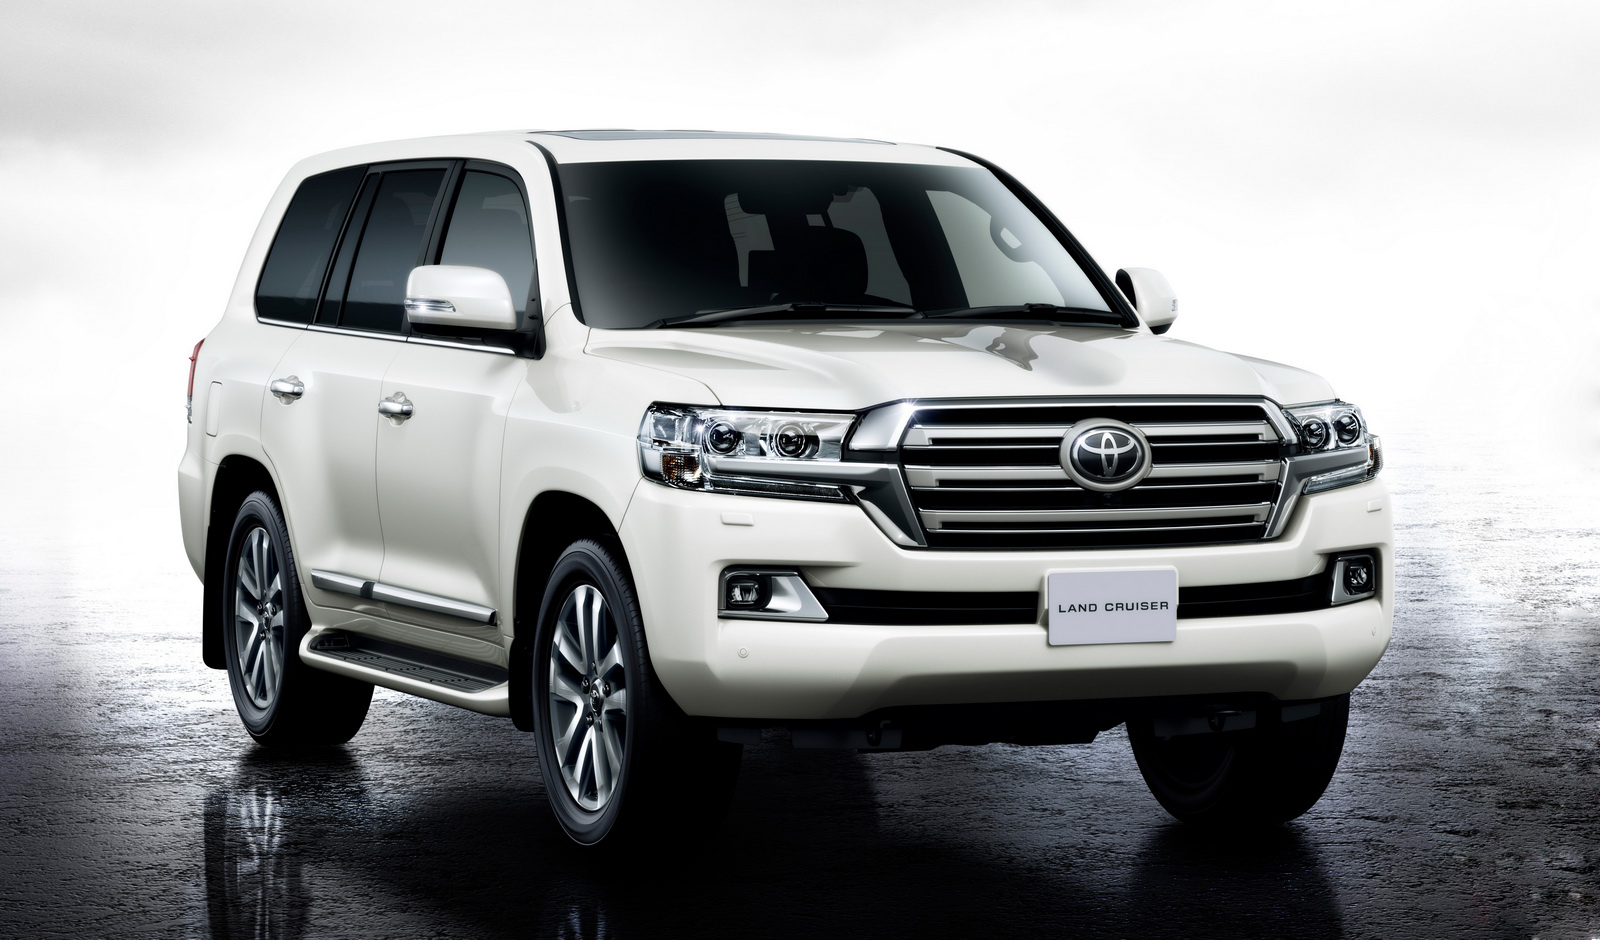 Toyota LandCruiser 200 has a payload capacity of 645kg - which is easy to overload if you add a heap of accessories, luggage and fill all the seats...